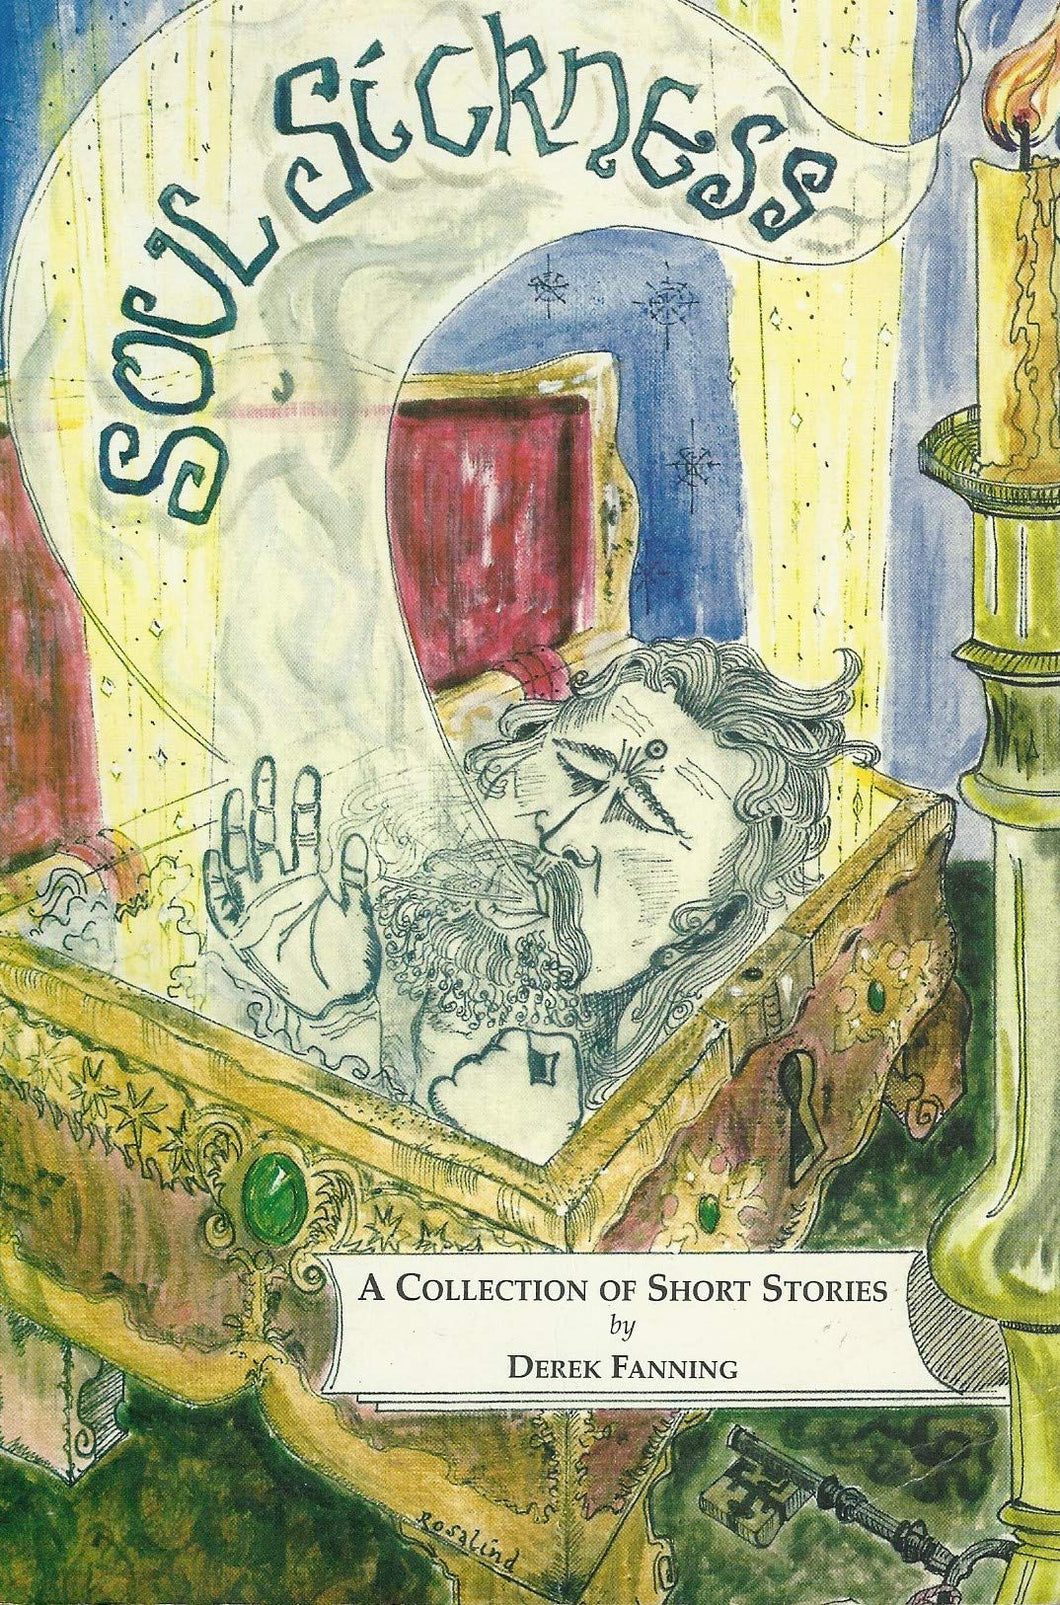 Soul Sickness: A Collection of Short Stories by Derek Fanning